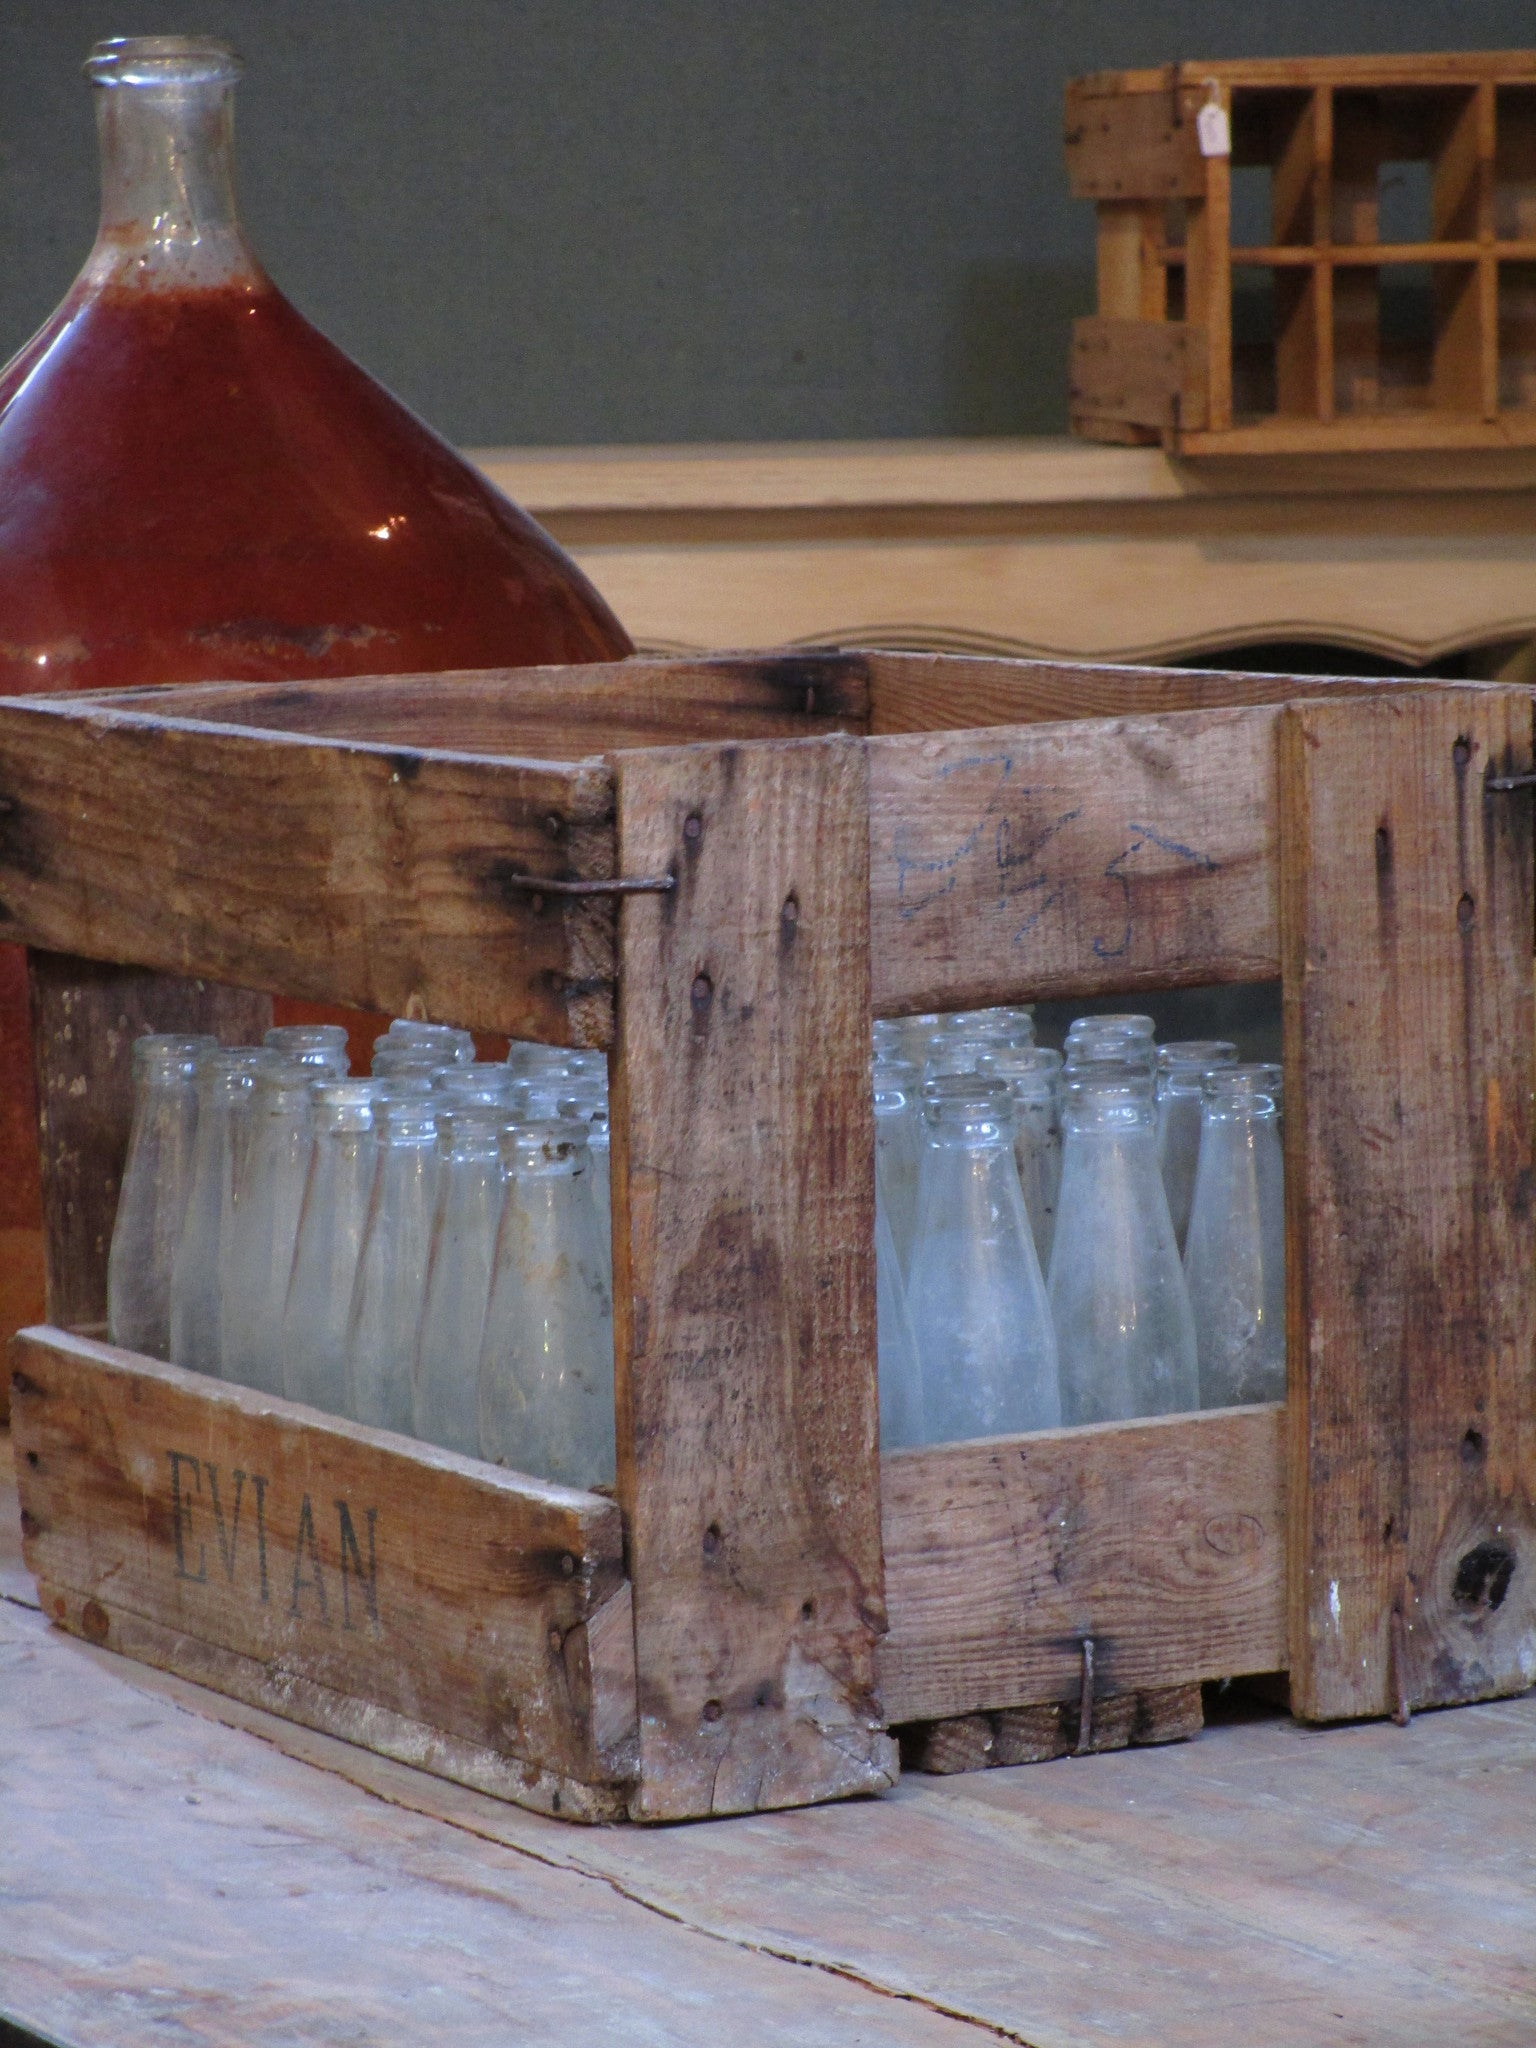 Vintage juice bottles in a rustic wooden box